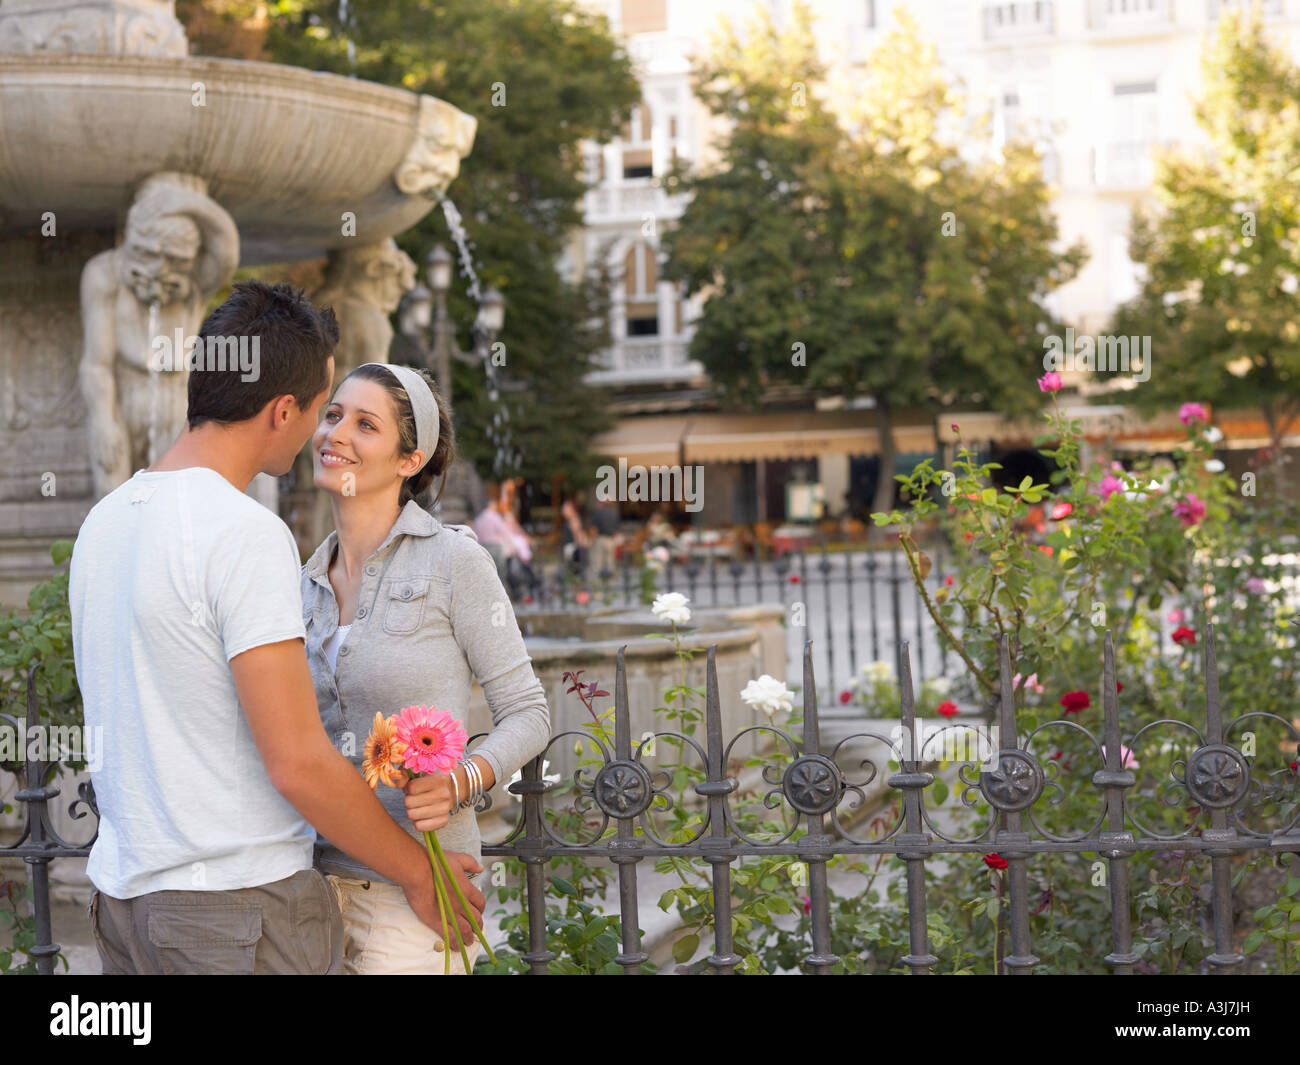 Romantic couple in town square - Stock Image